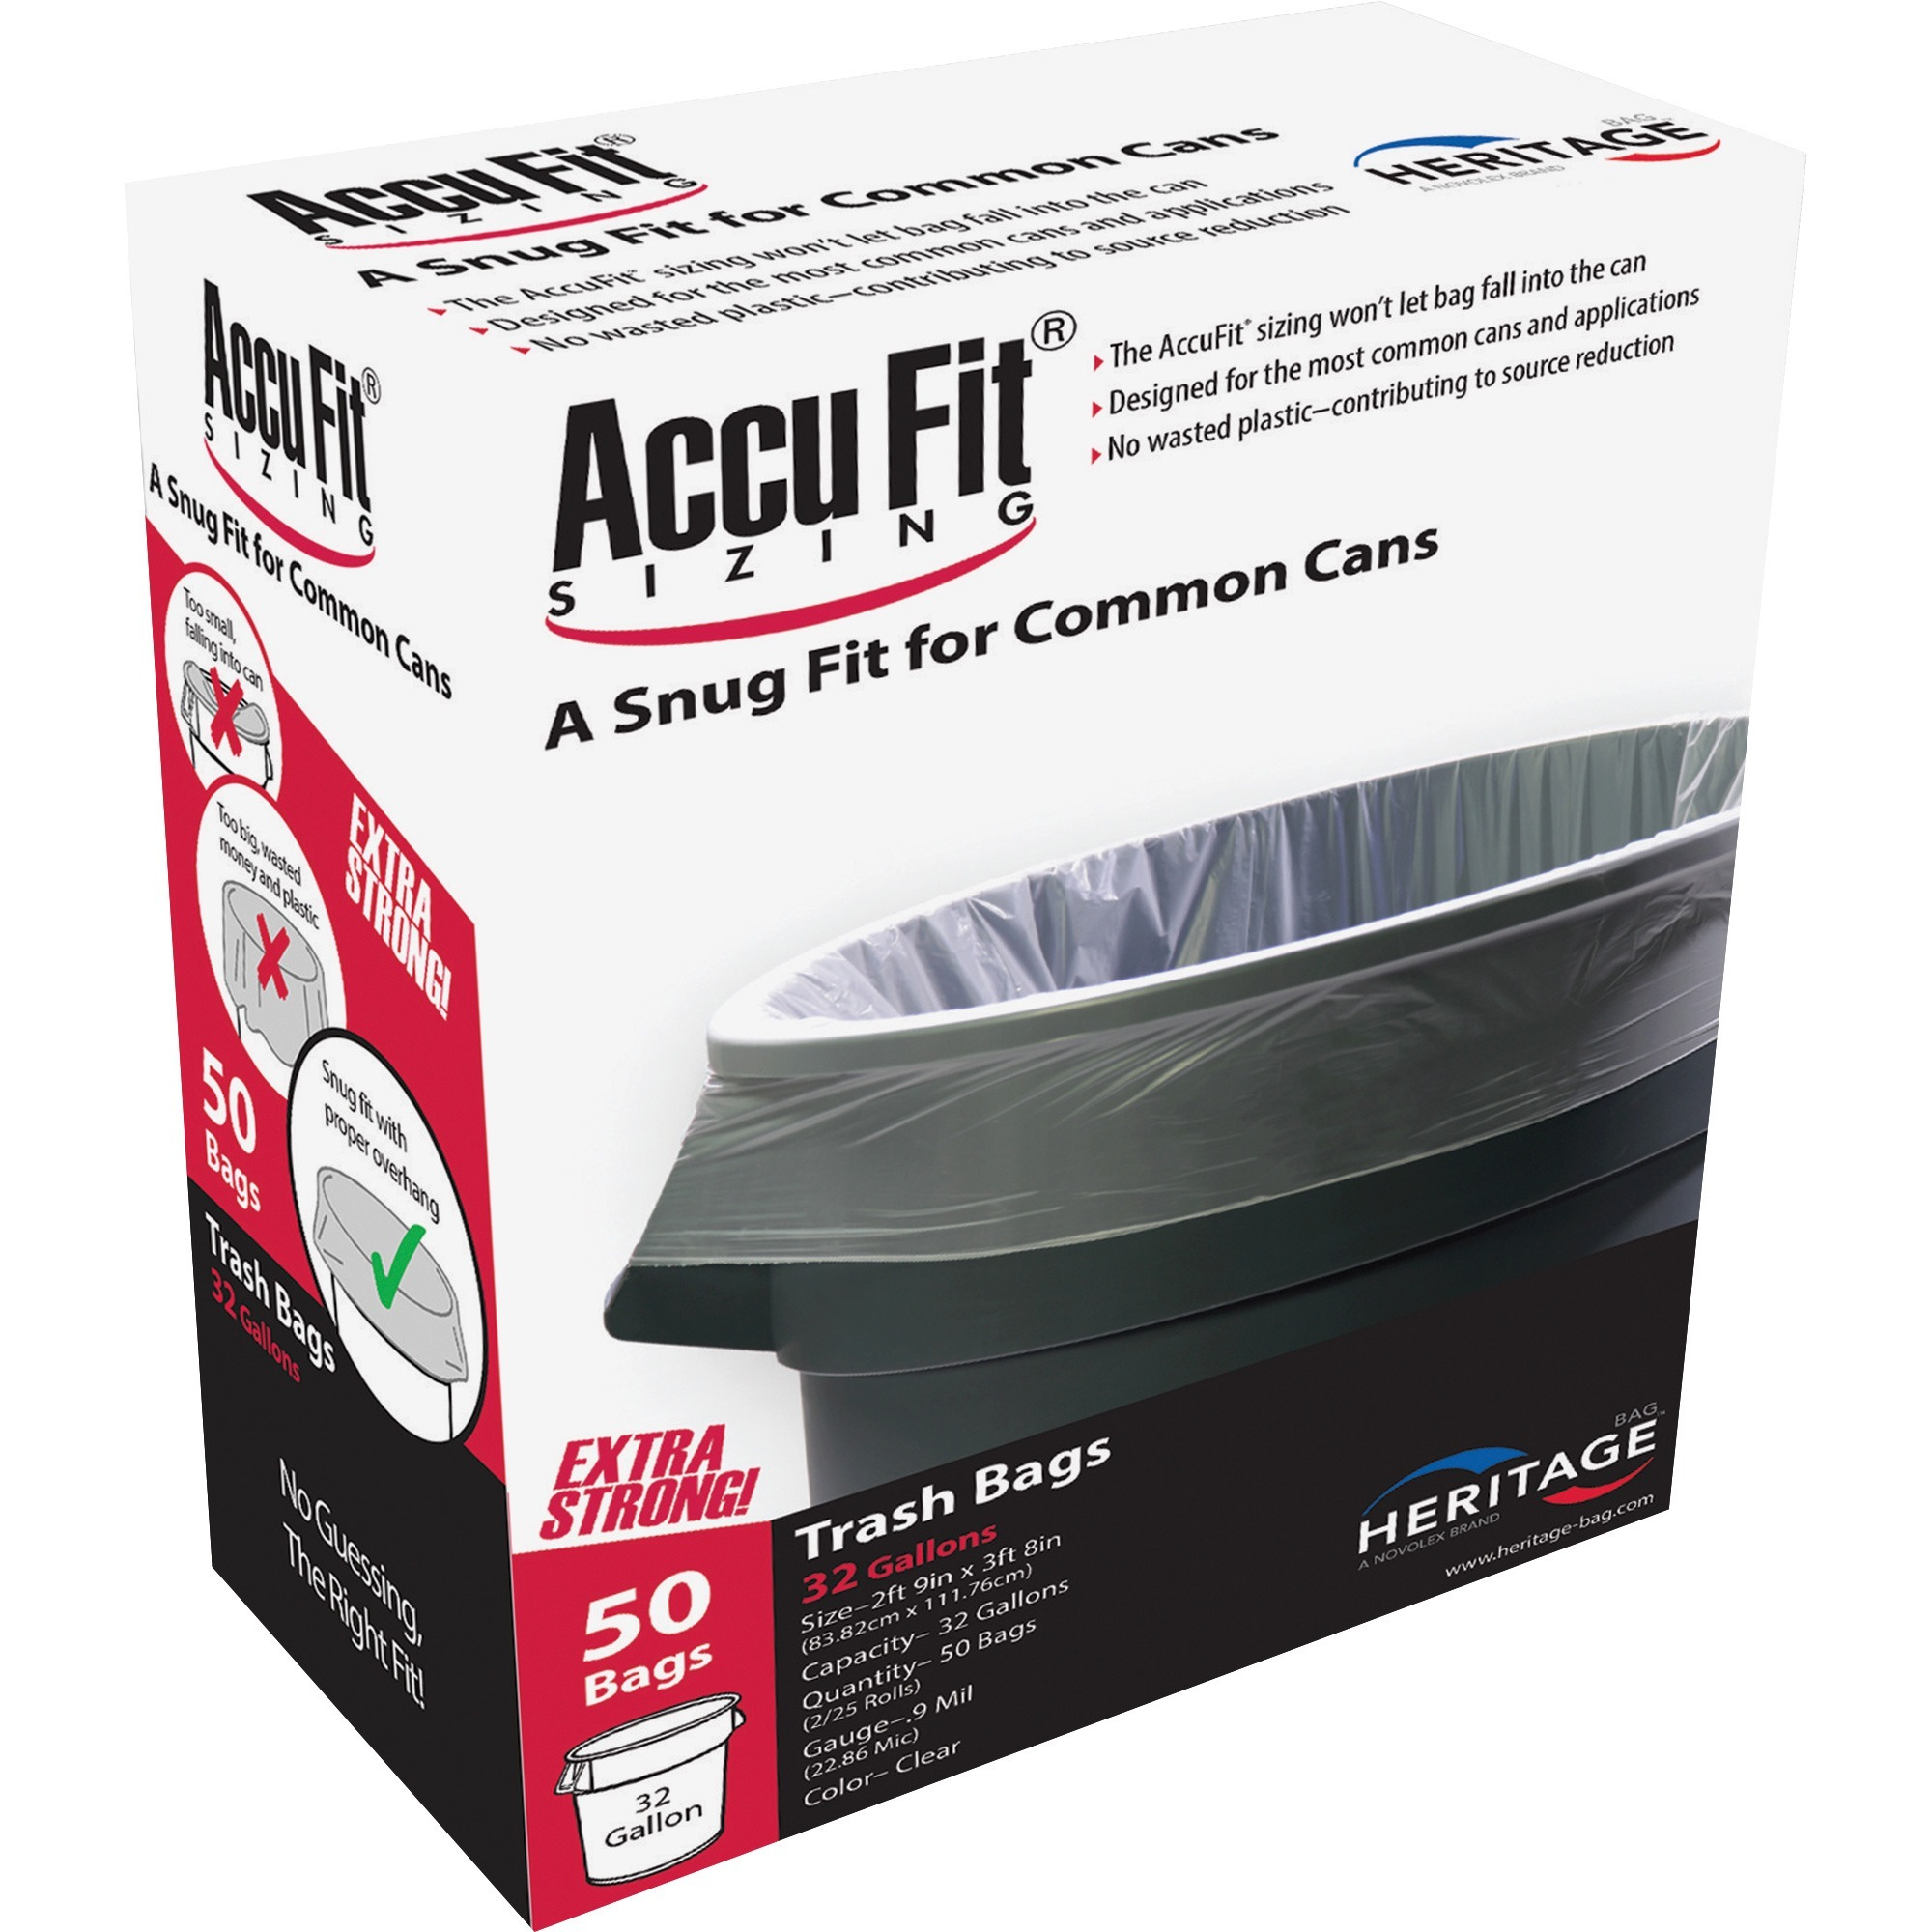 Heritage, HERH6644TCRC1, Accufit Reprime 32 Gallon Can Liners, 50 / Box, Clear, 32 gal